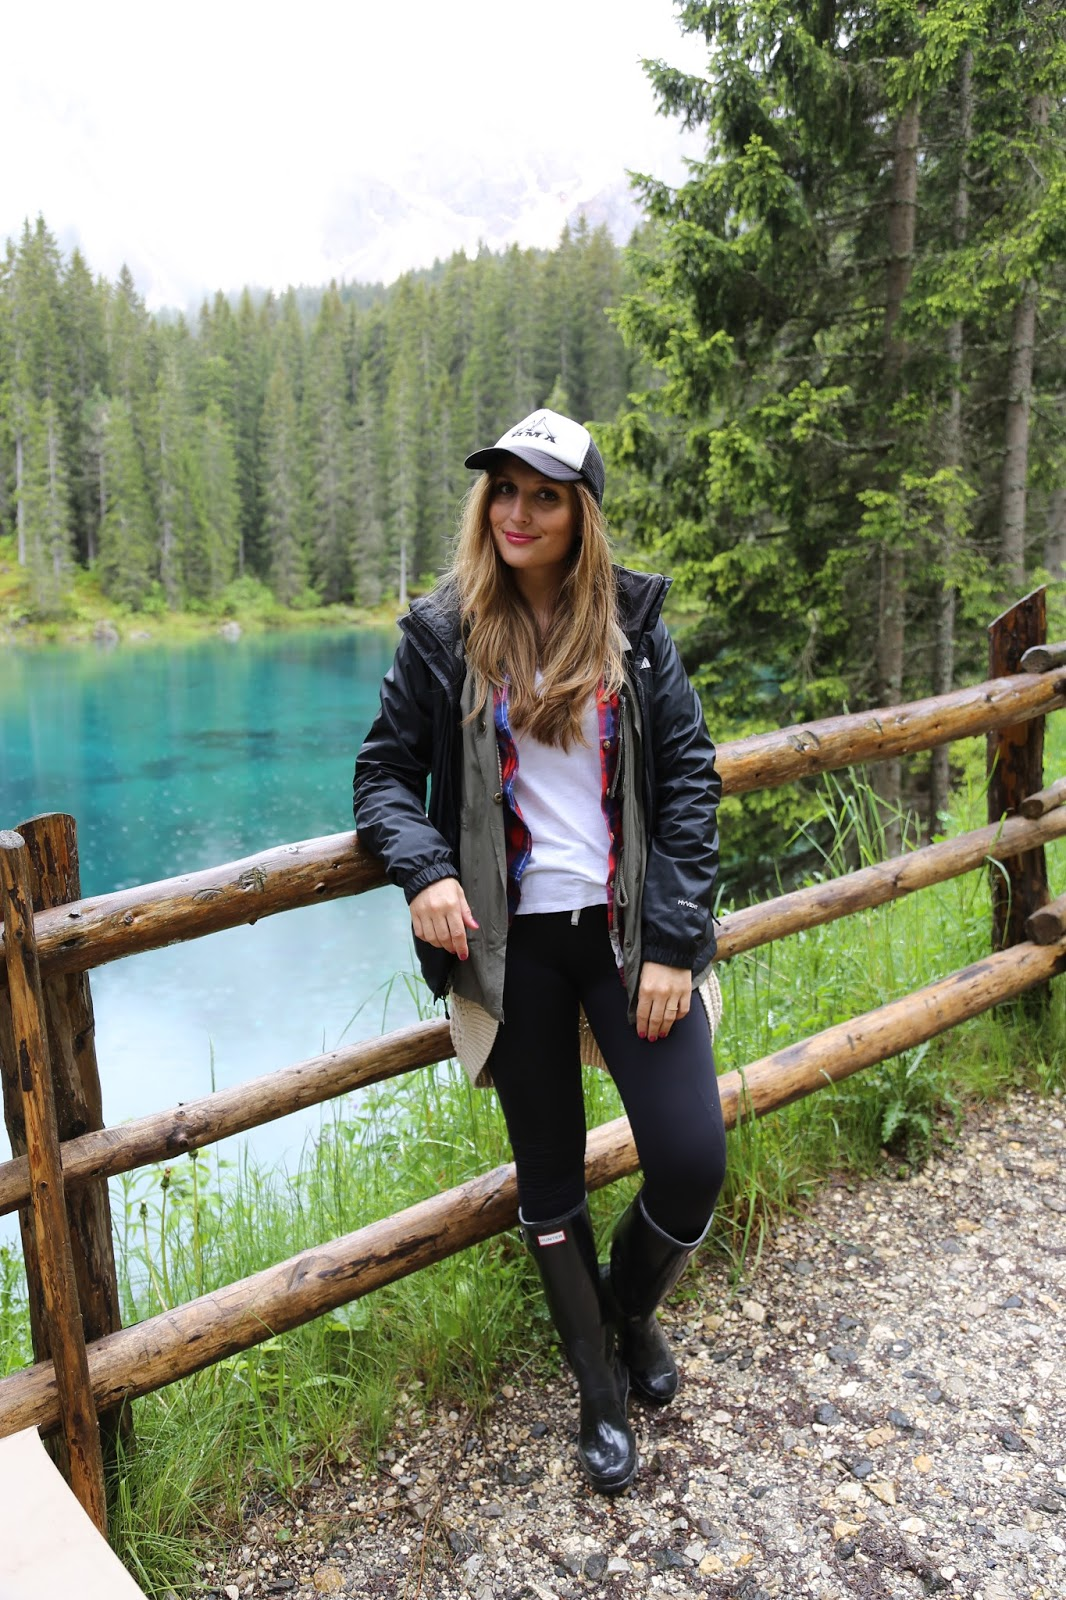 Wanderlook - was zieht man zum wandern an - coole Outdoor Looks - fashionstylebyjohanna Outdoor - Outdoor - Blogger